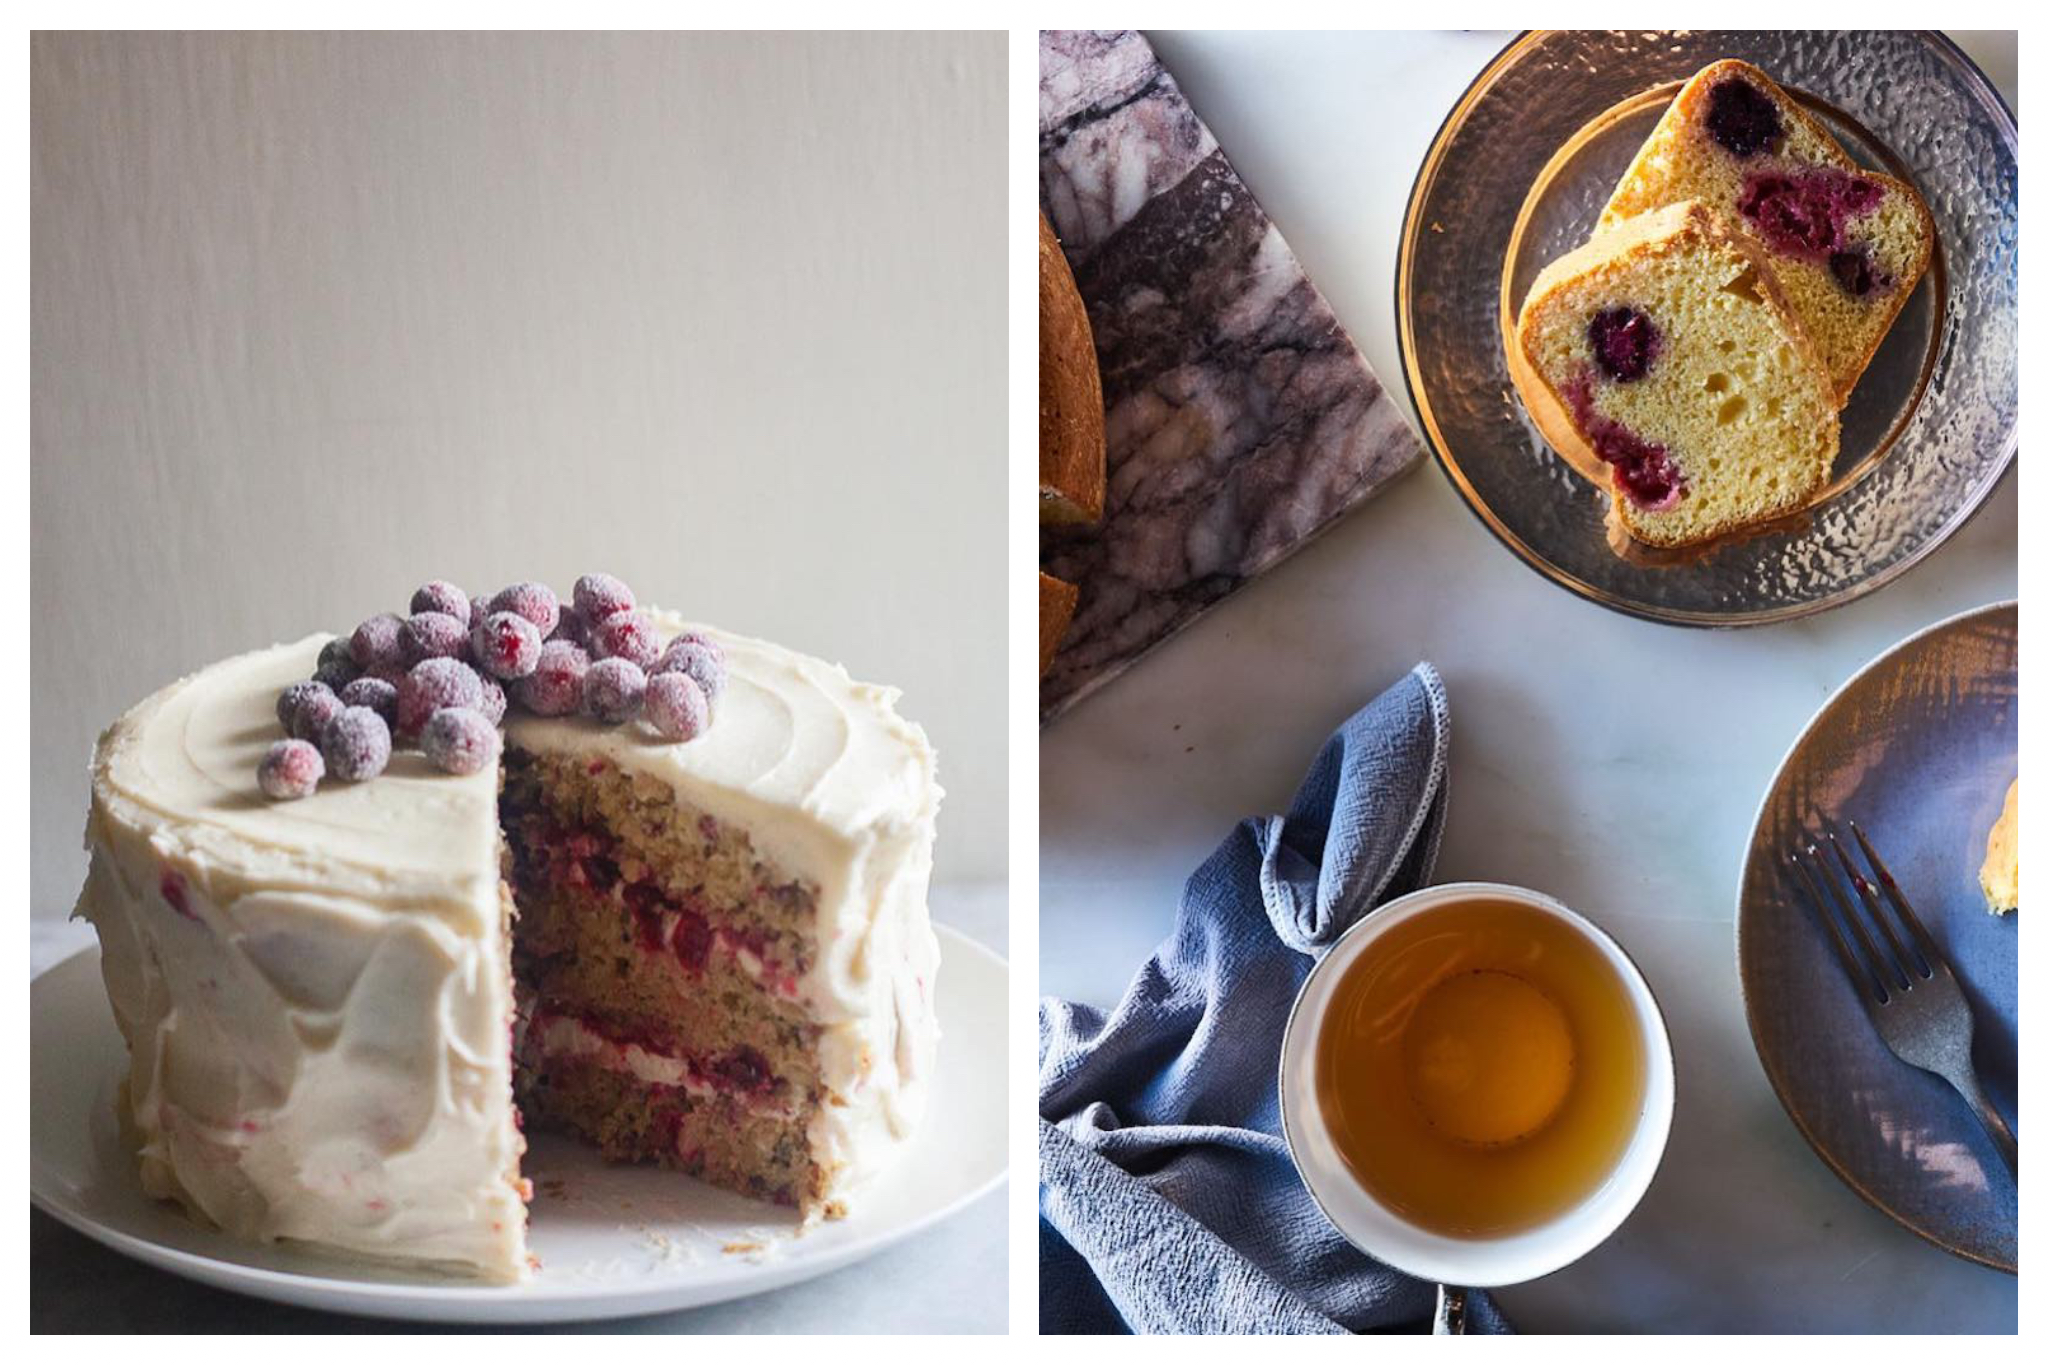 On left: A towering, generously-frosted cranberry and parsnip cake is illuminated by the soft window light. On right: It's tea time, complete with thick, soft slices of Italian berry cake.